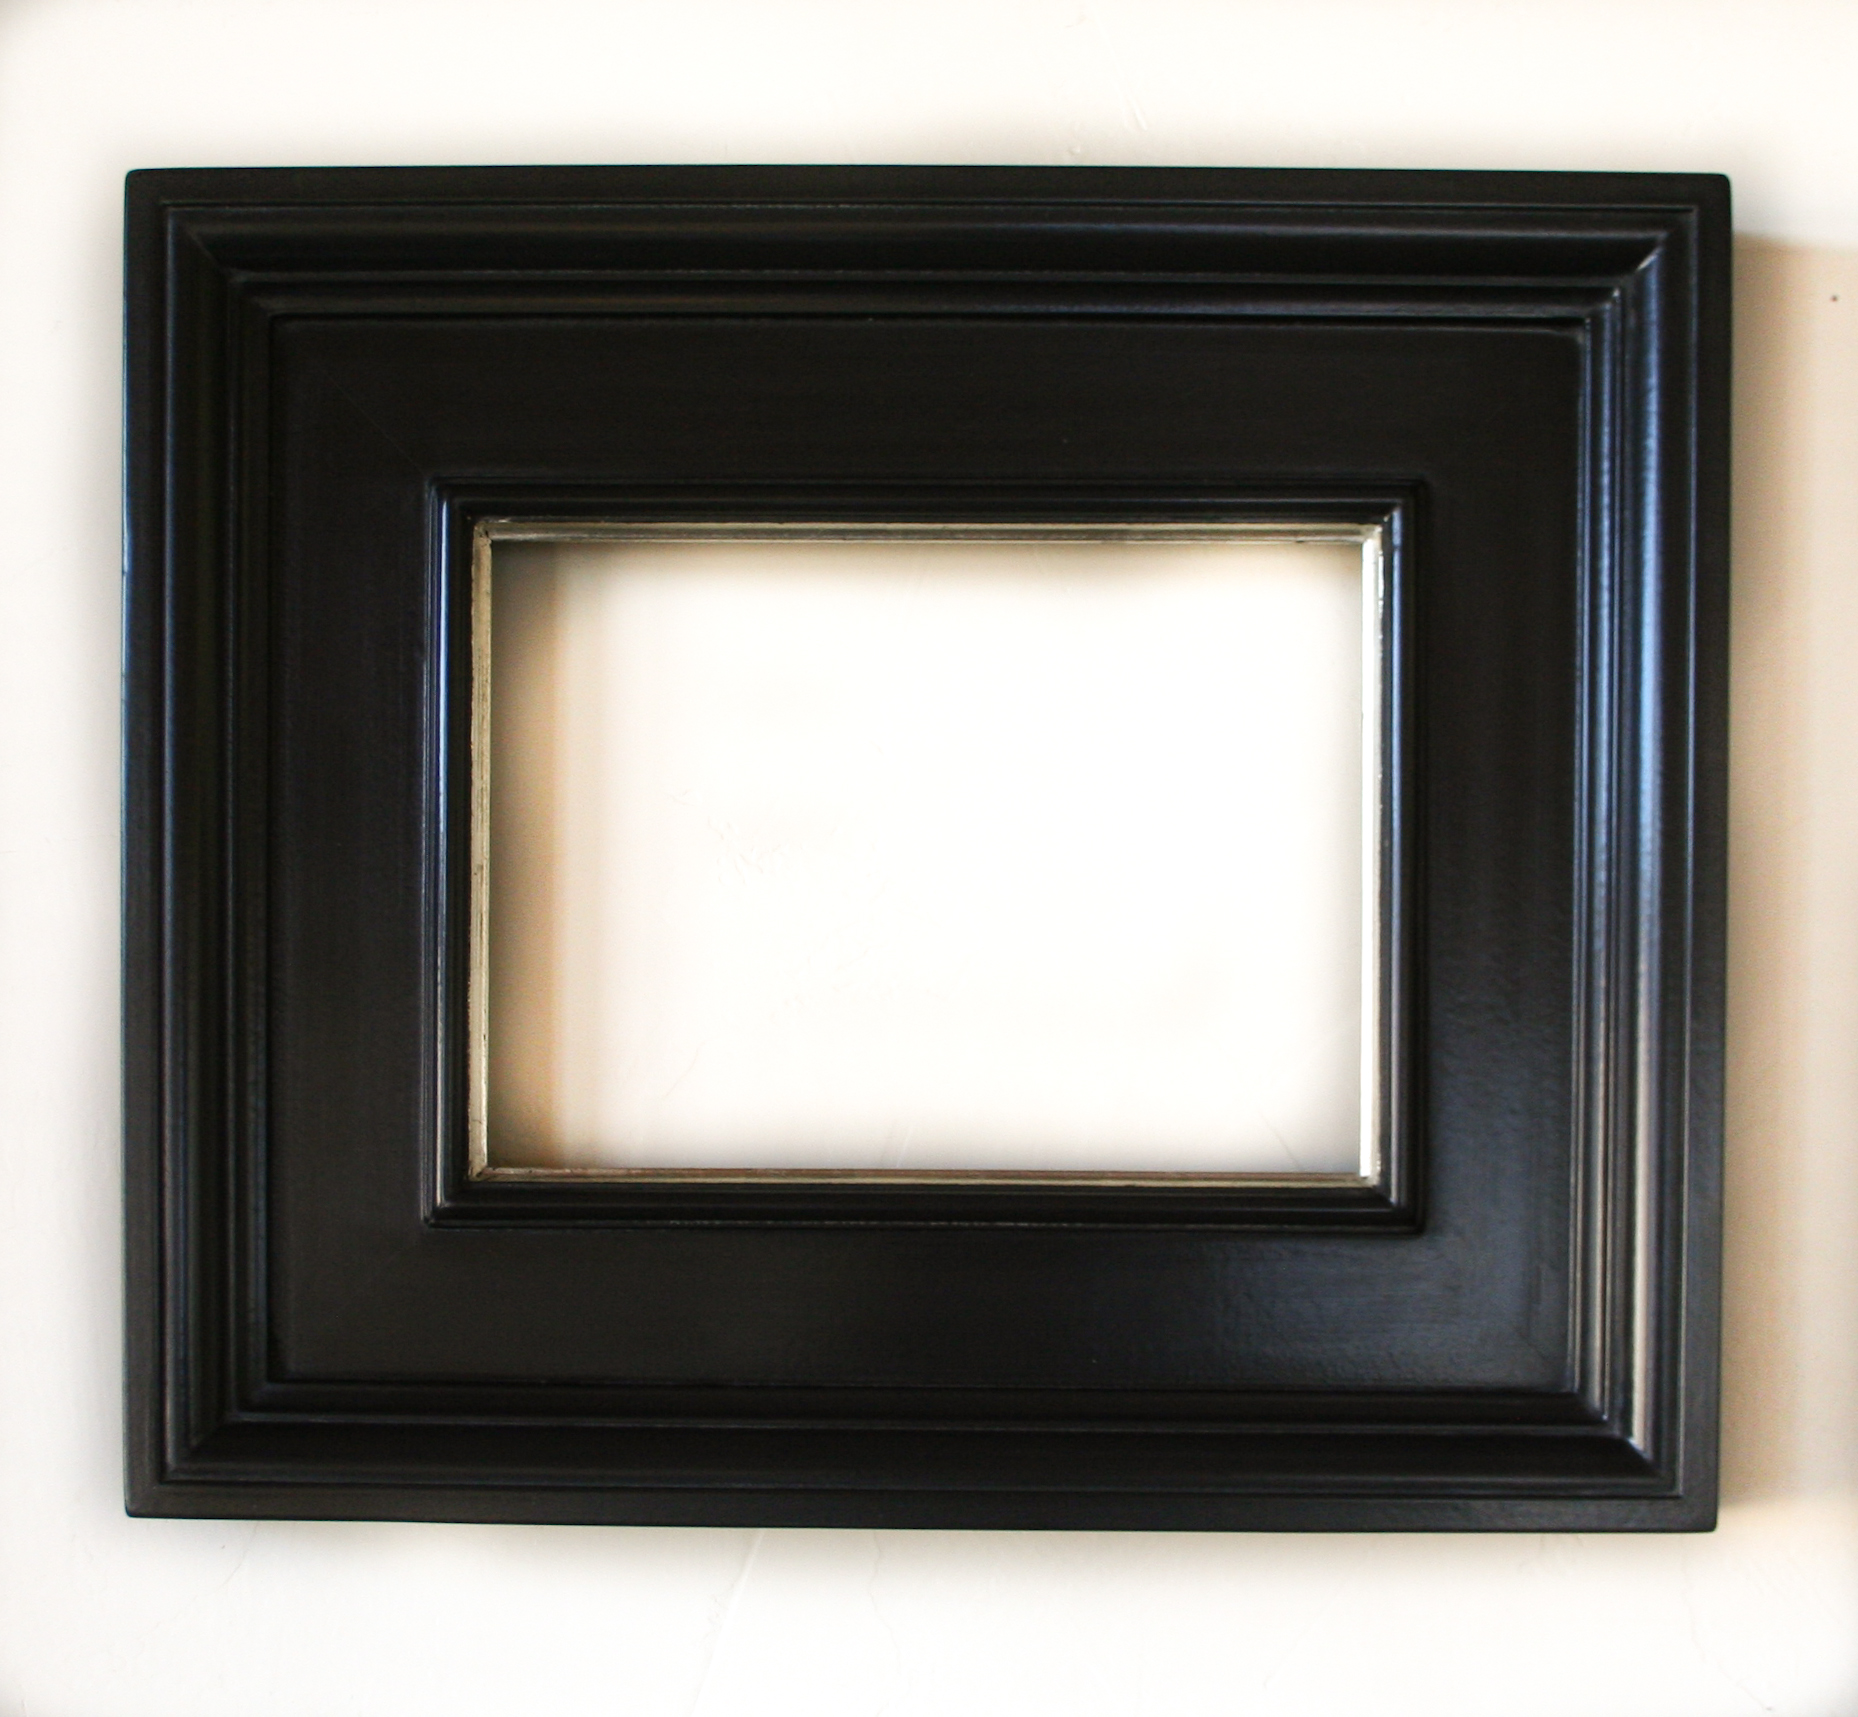 Deco flat panel | Bryan Smith Frames